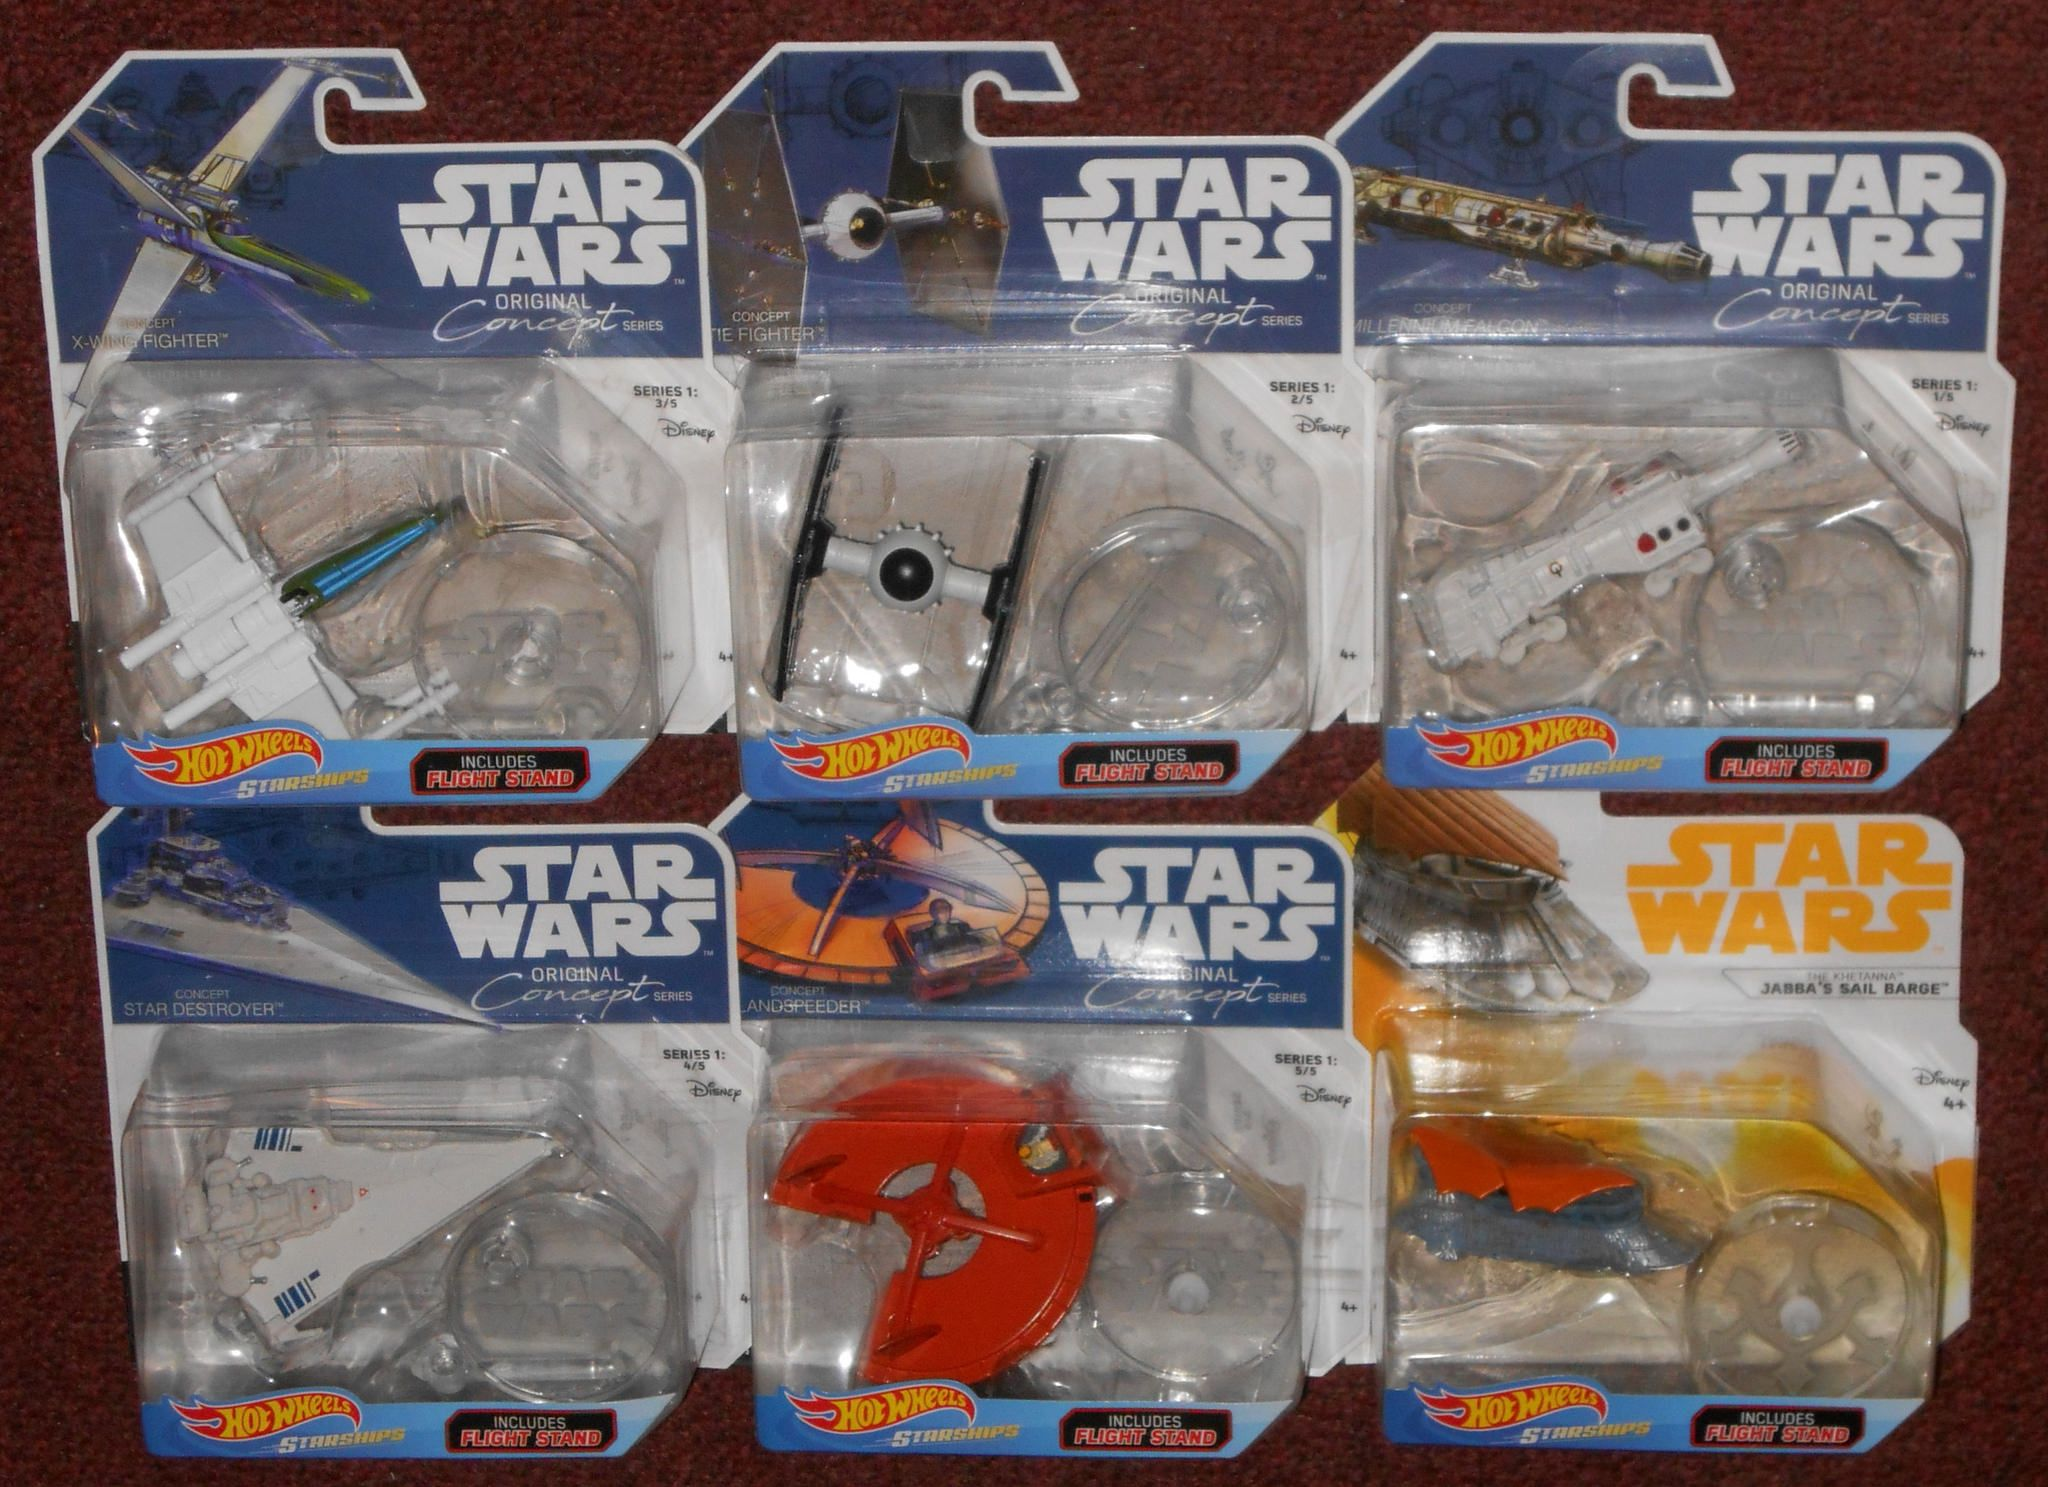 Hot Wheels Original Concept Series Star Wars Toys Star Wars Collection X Wing Fighter